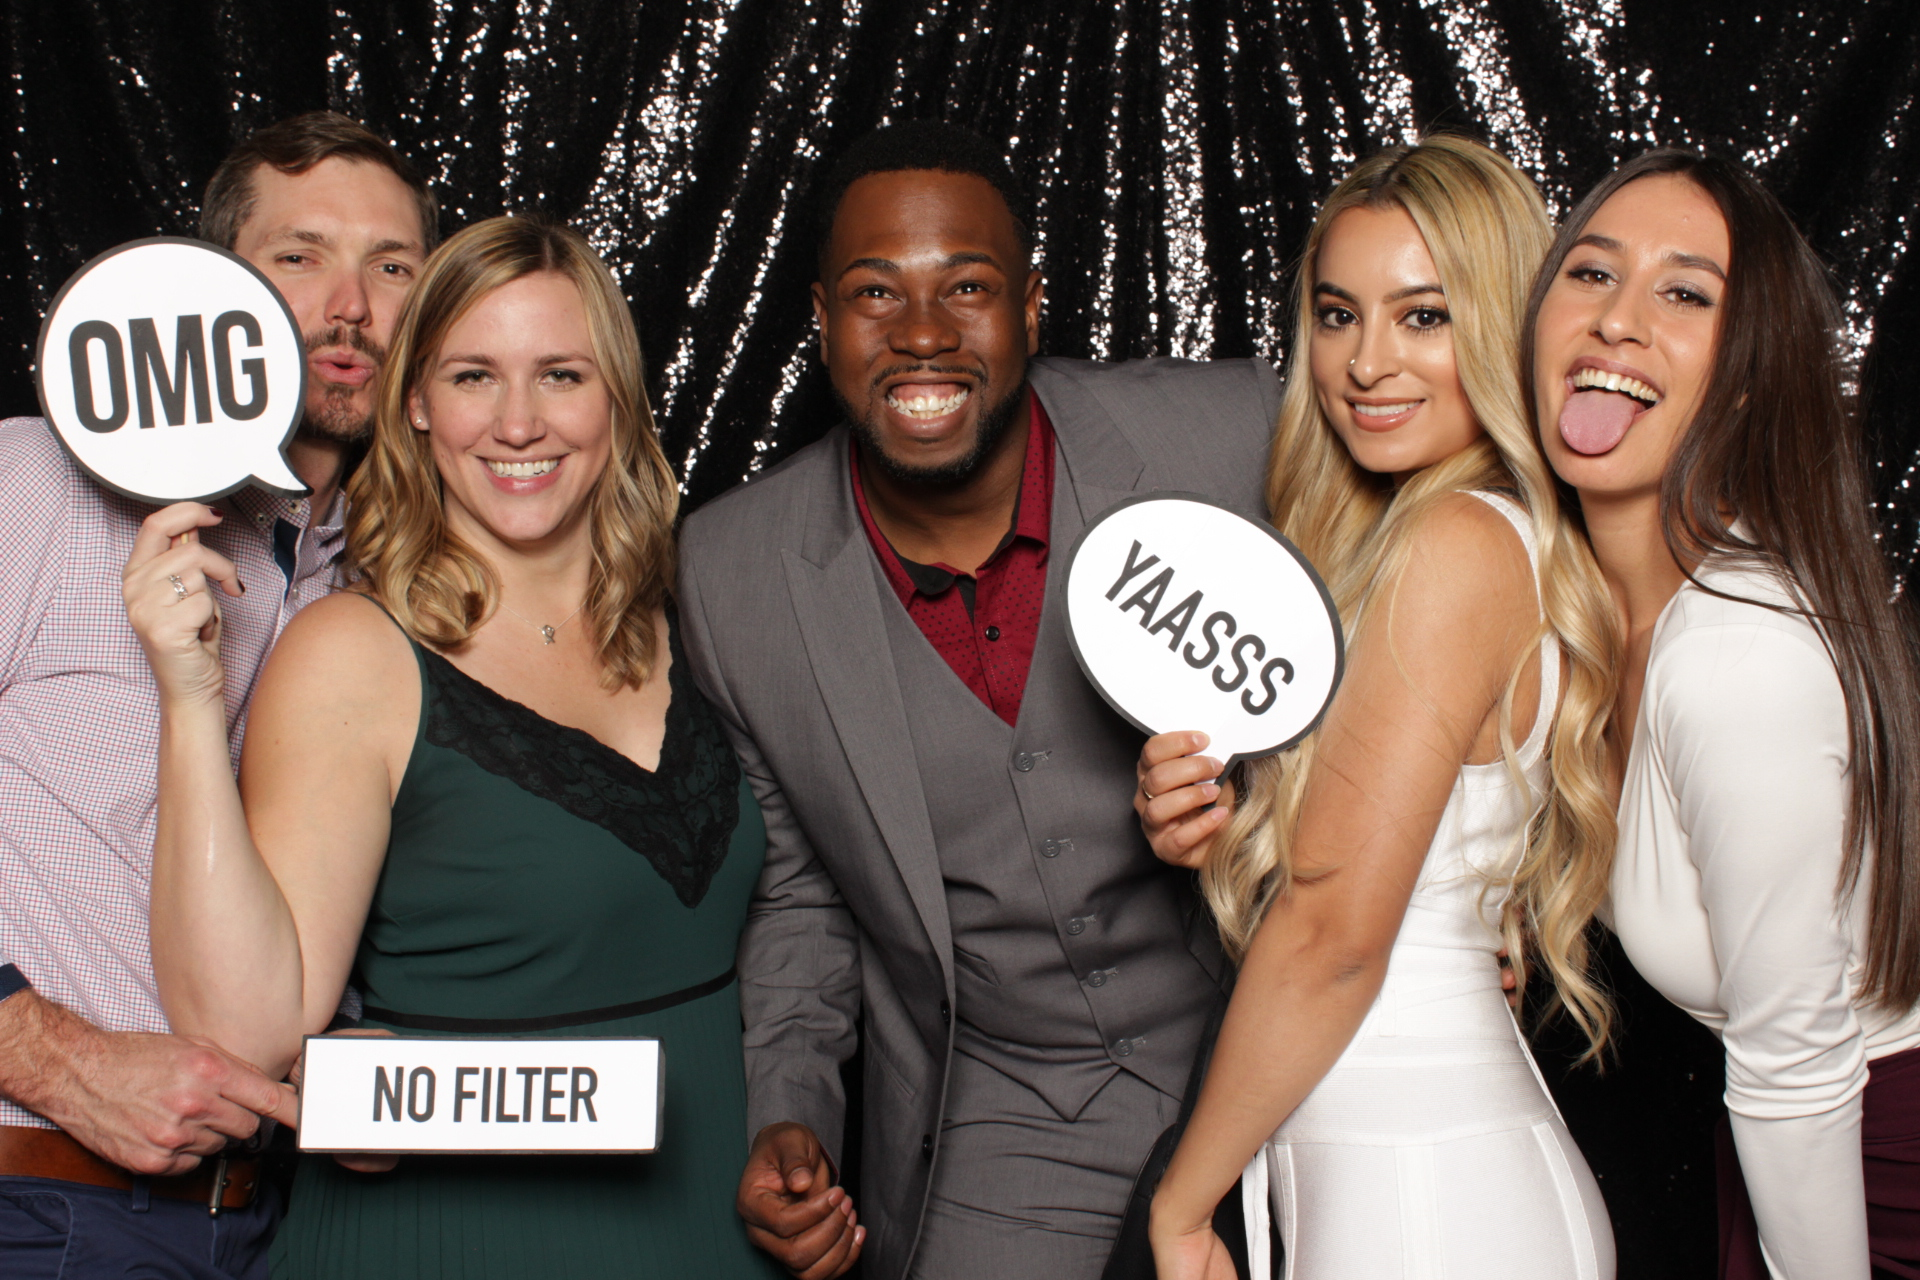 OH Partners Holiday Party 2018 - Found:RE Hotel, Phoenix, AZ12/15/2018